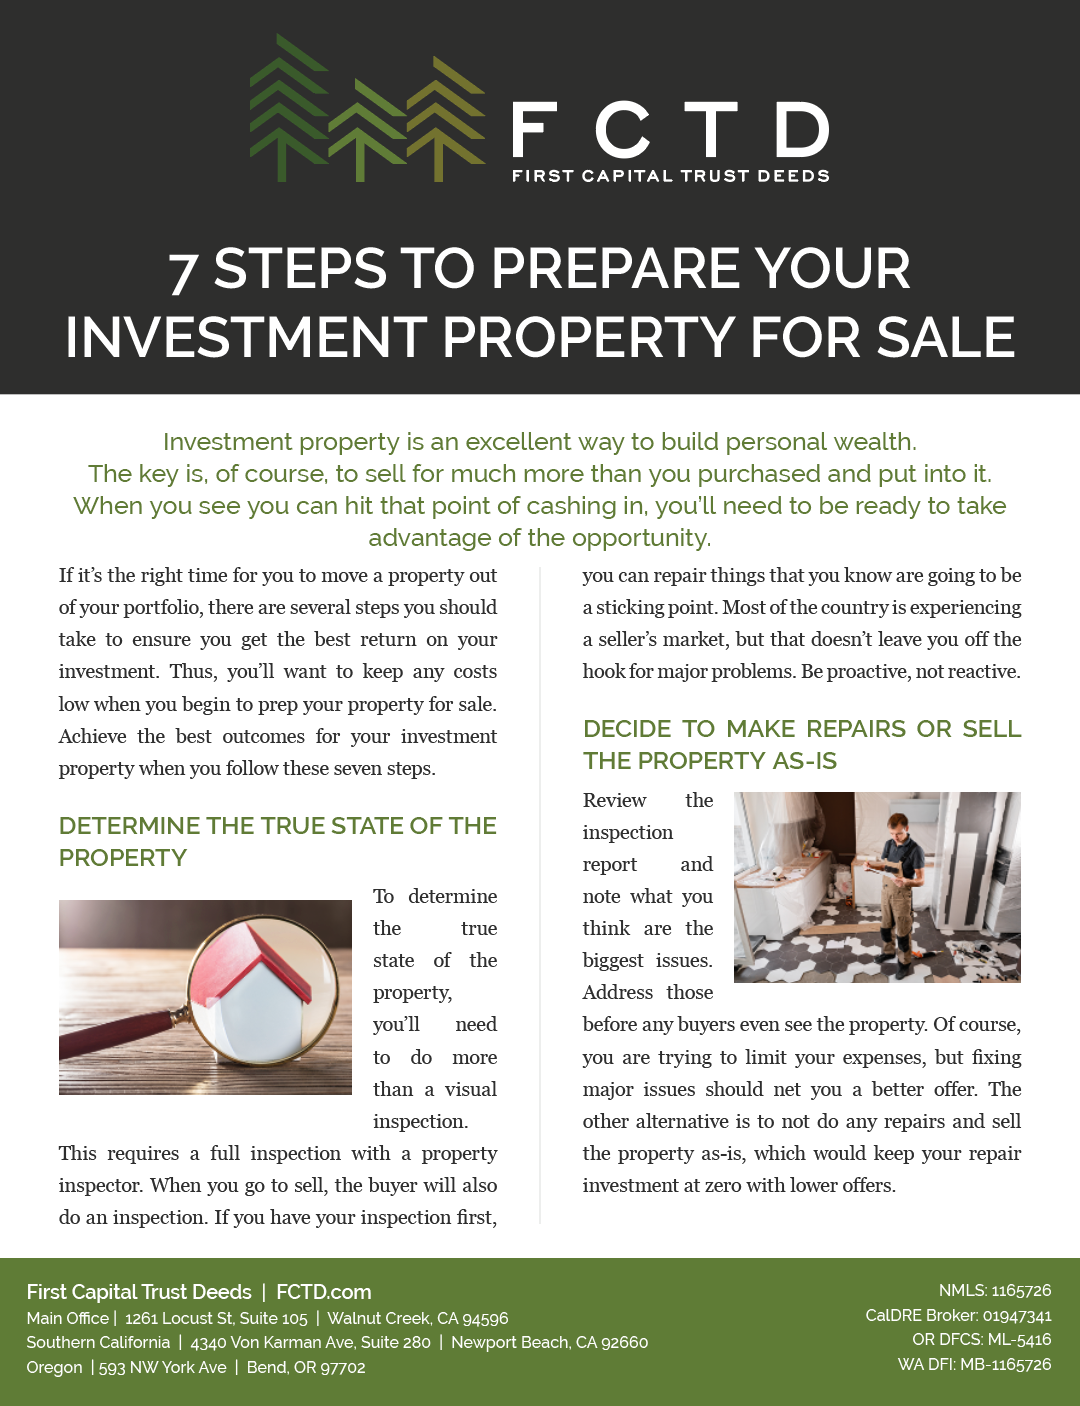 7_Ways_to_Prepare_Your_Property_for_Sale_indd___50___GPU_Preview_